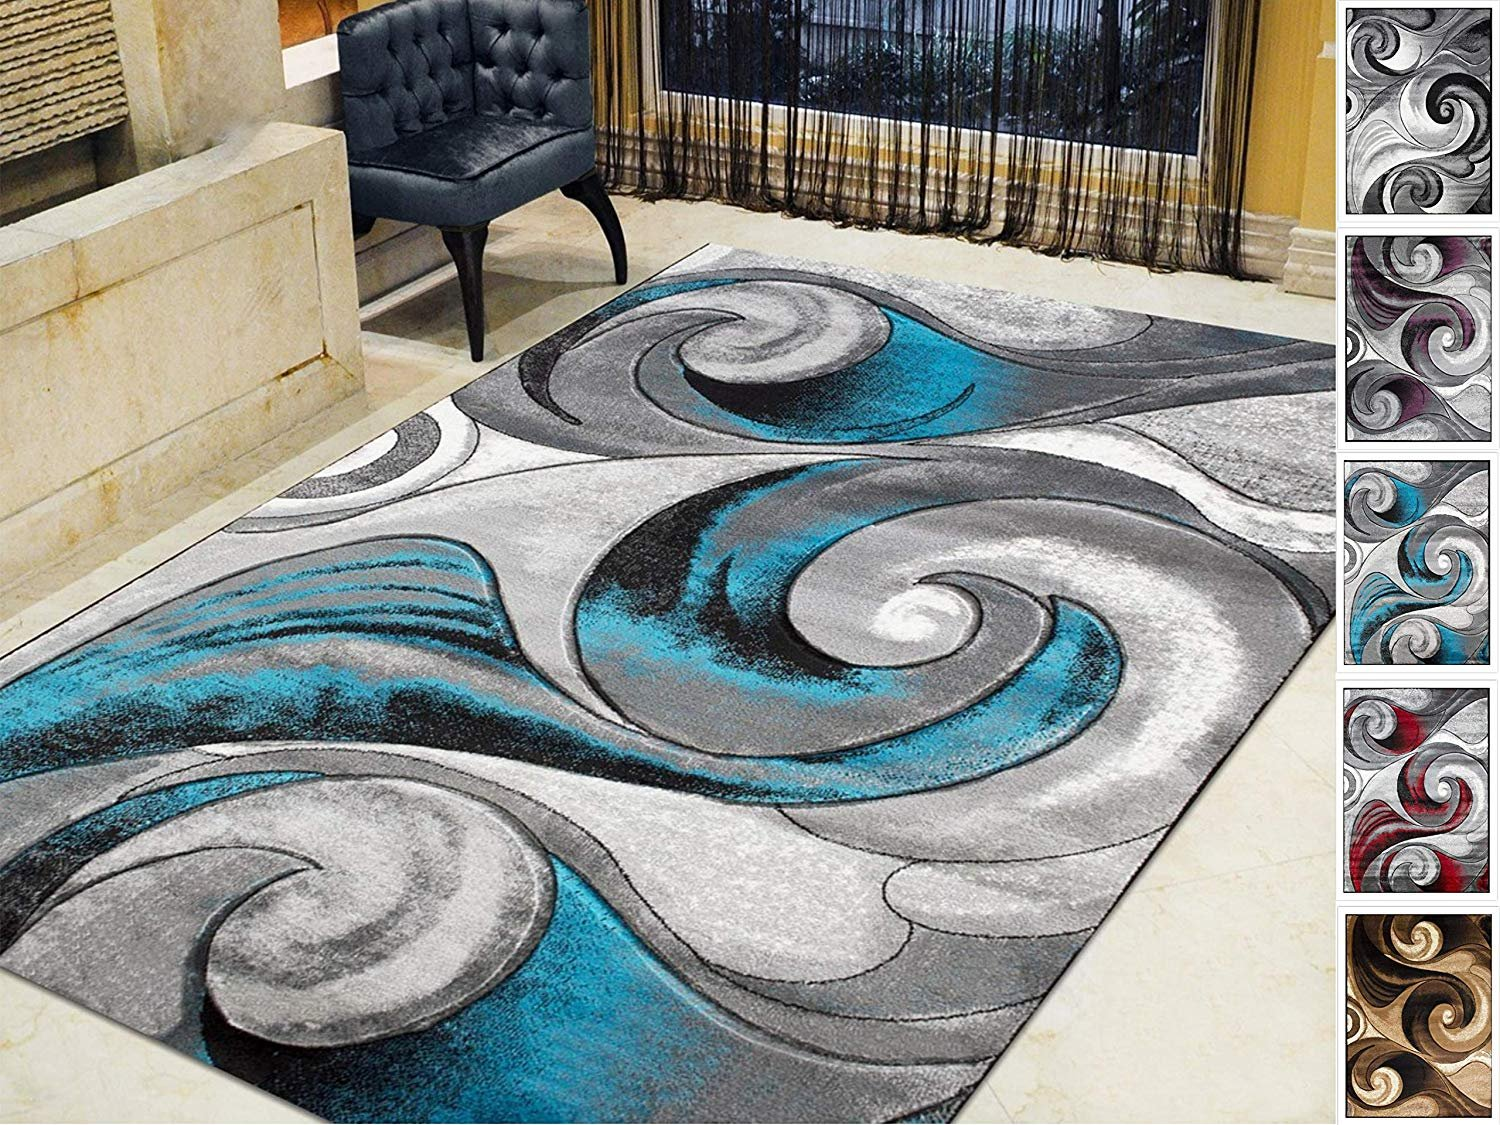 Handcraft Rugs Swirls Abstract Design Modern Contemporary